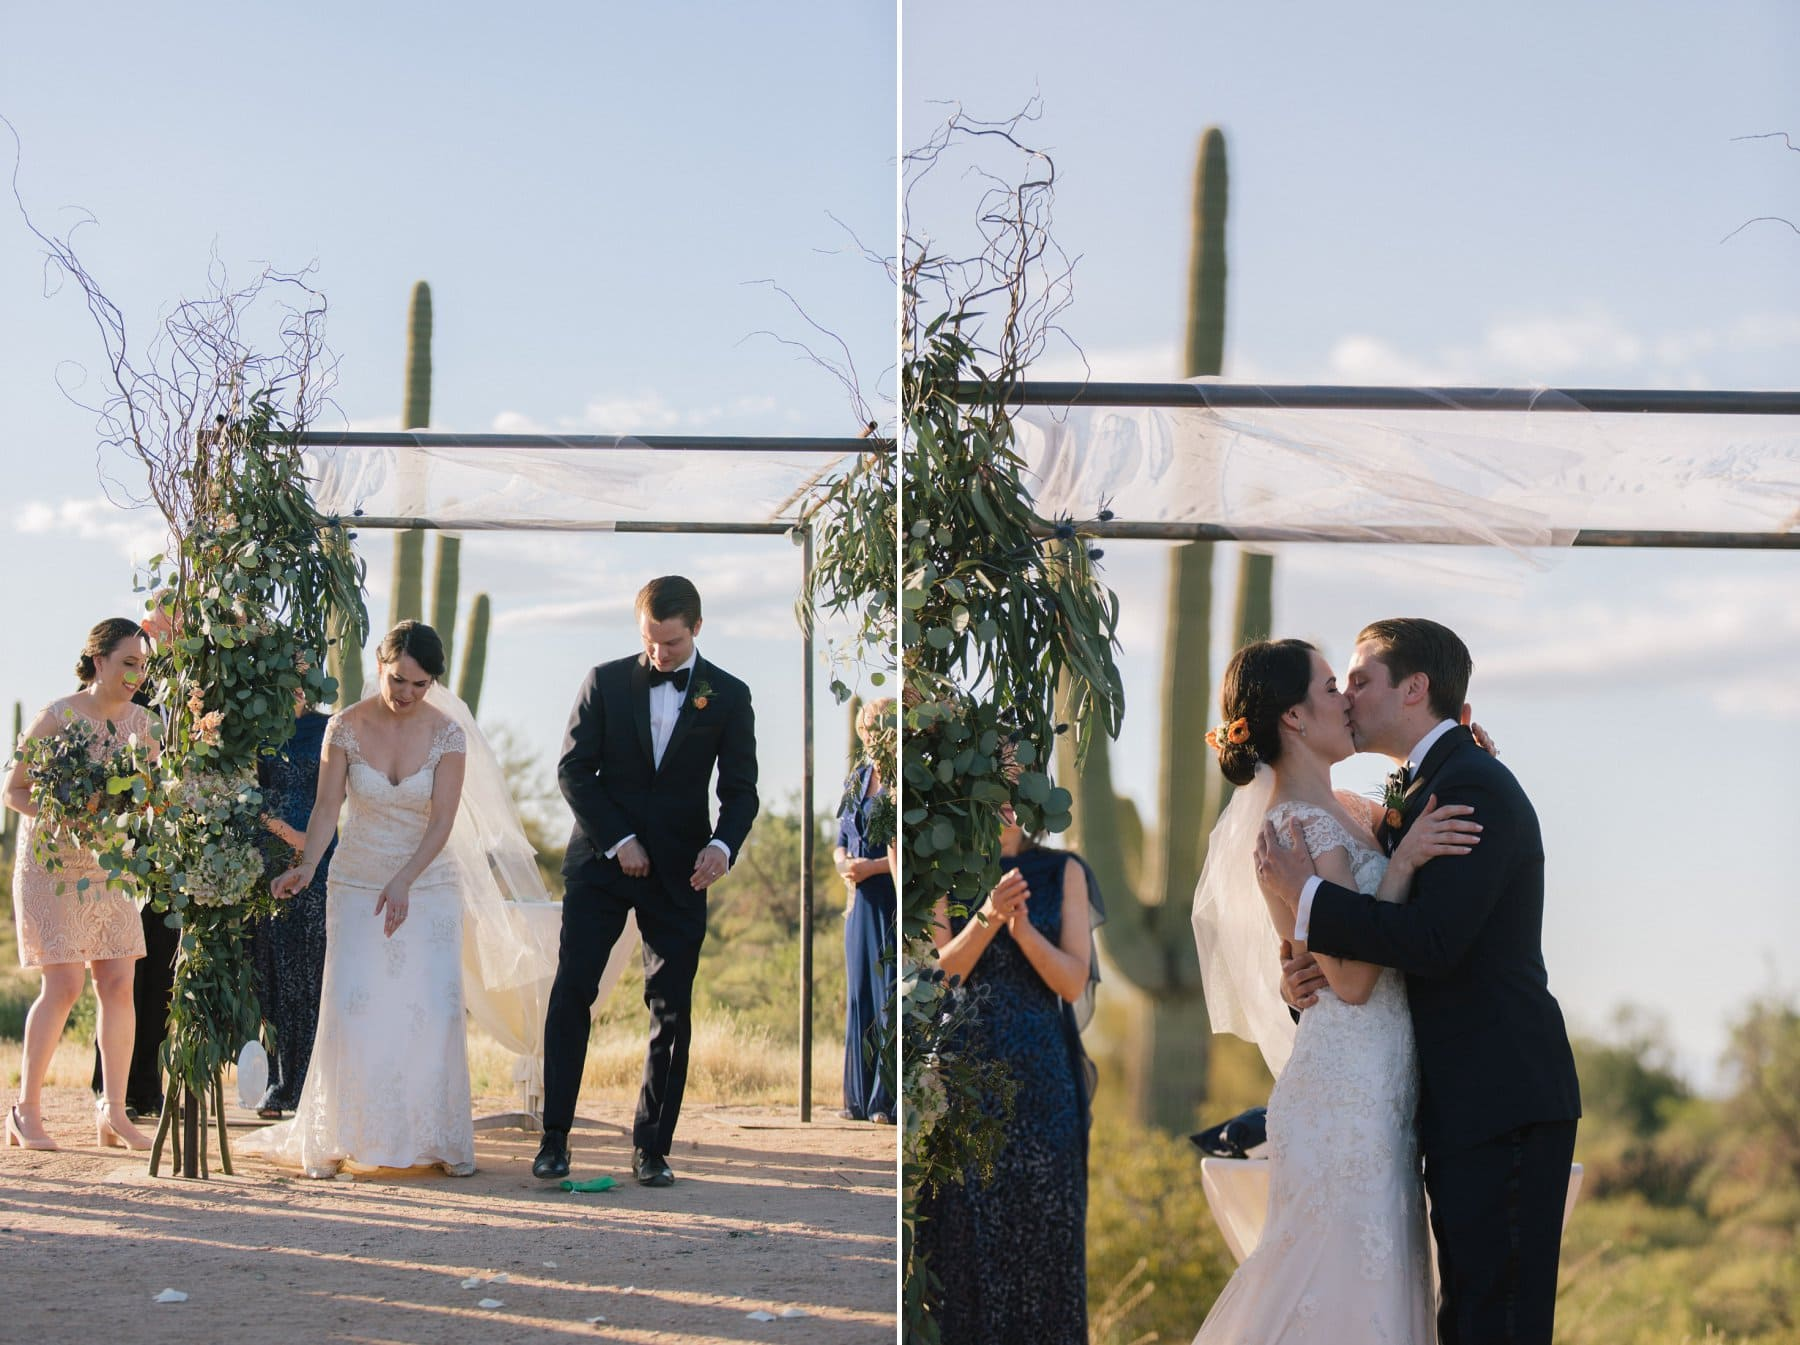 breaking of the glass and first kiss at Desert Foothills barn wedding